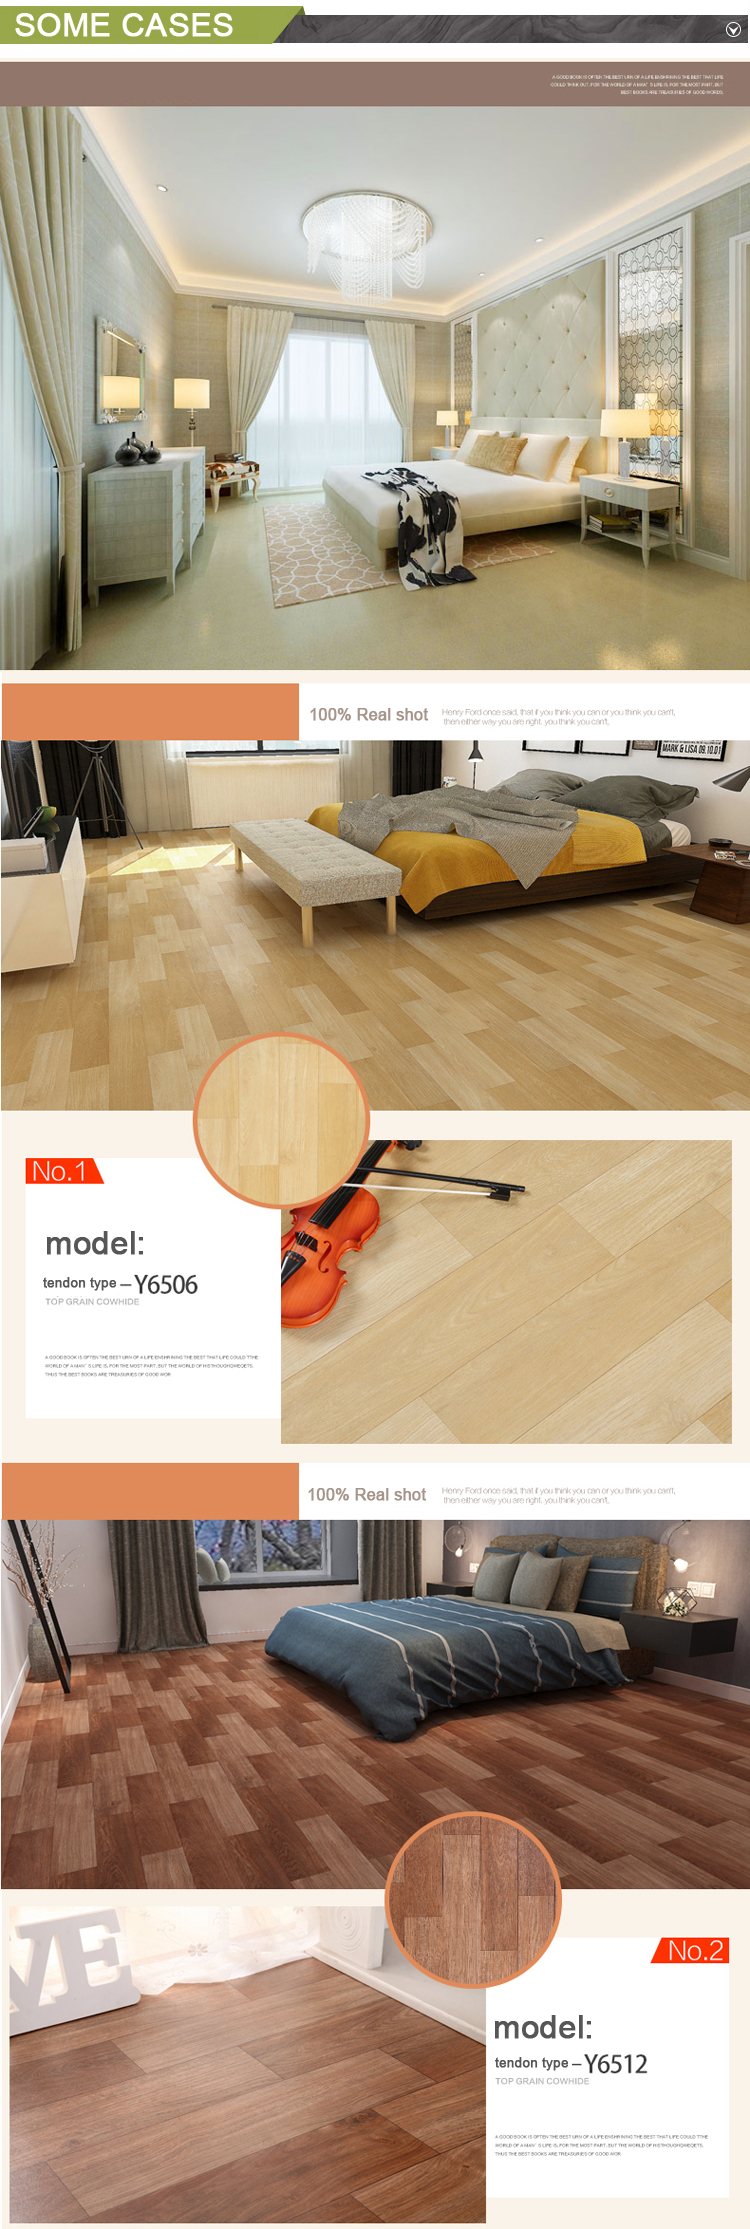 Best price indoor fire resistant and waterproof pvc floor tiles best price indoor fire resistant and waterproof pvc floor tiles kenya dailygadgetfo Image collections